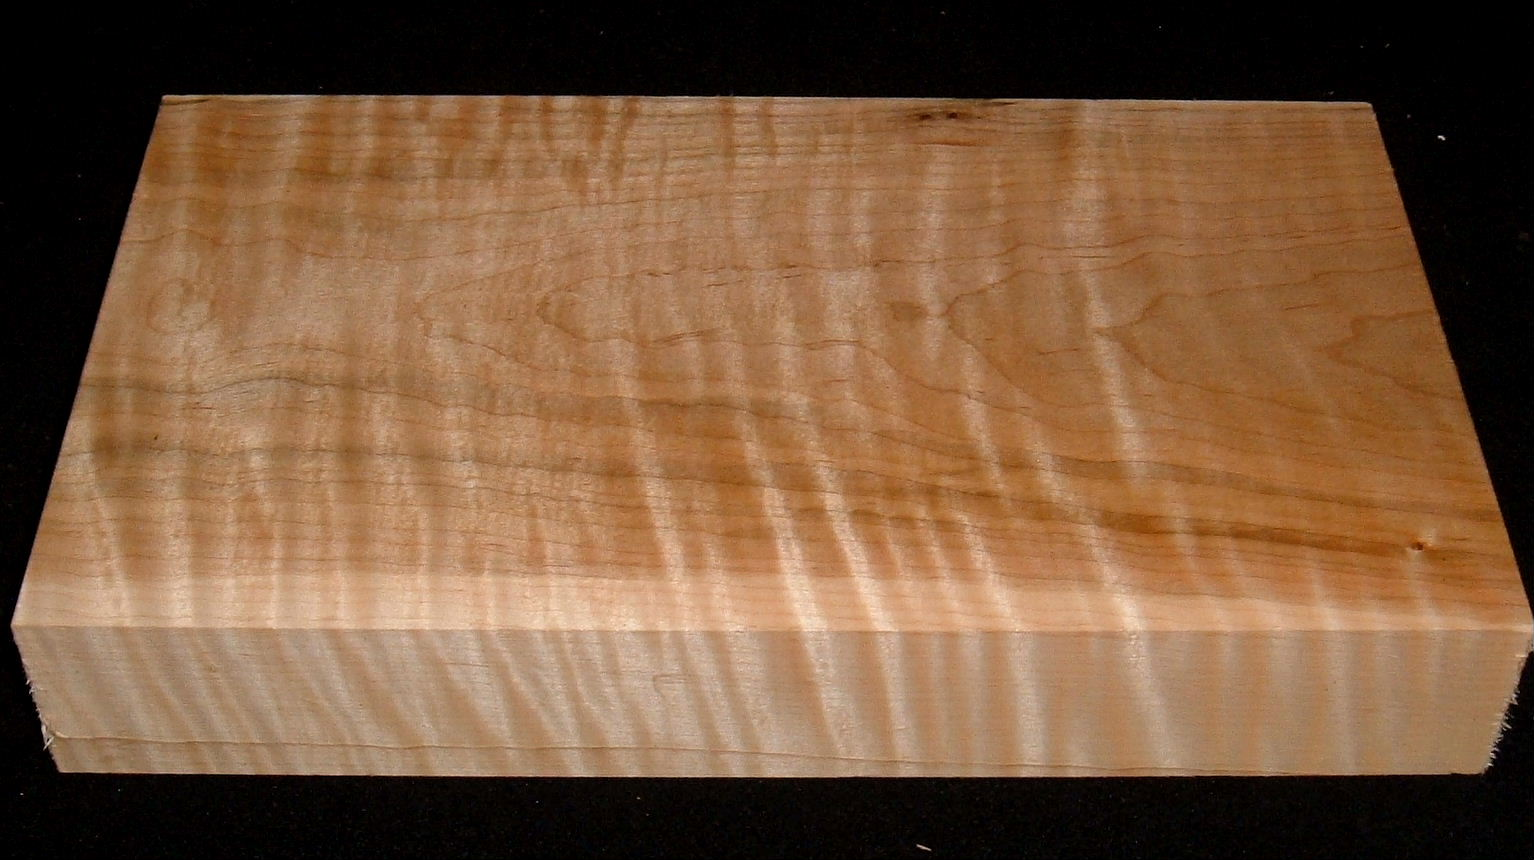 HWS-2918n, 1-7/8x6-7/8x12+, Curly Tiger Maple, Heartwood/Sapwood Blend, Turning Wood